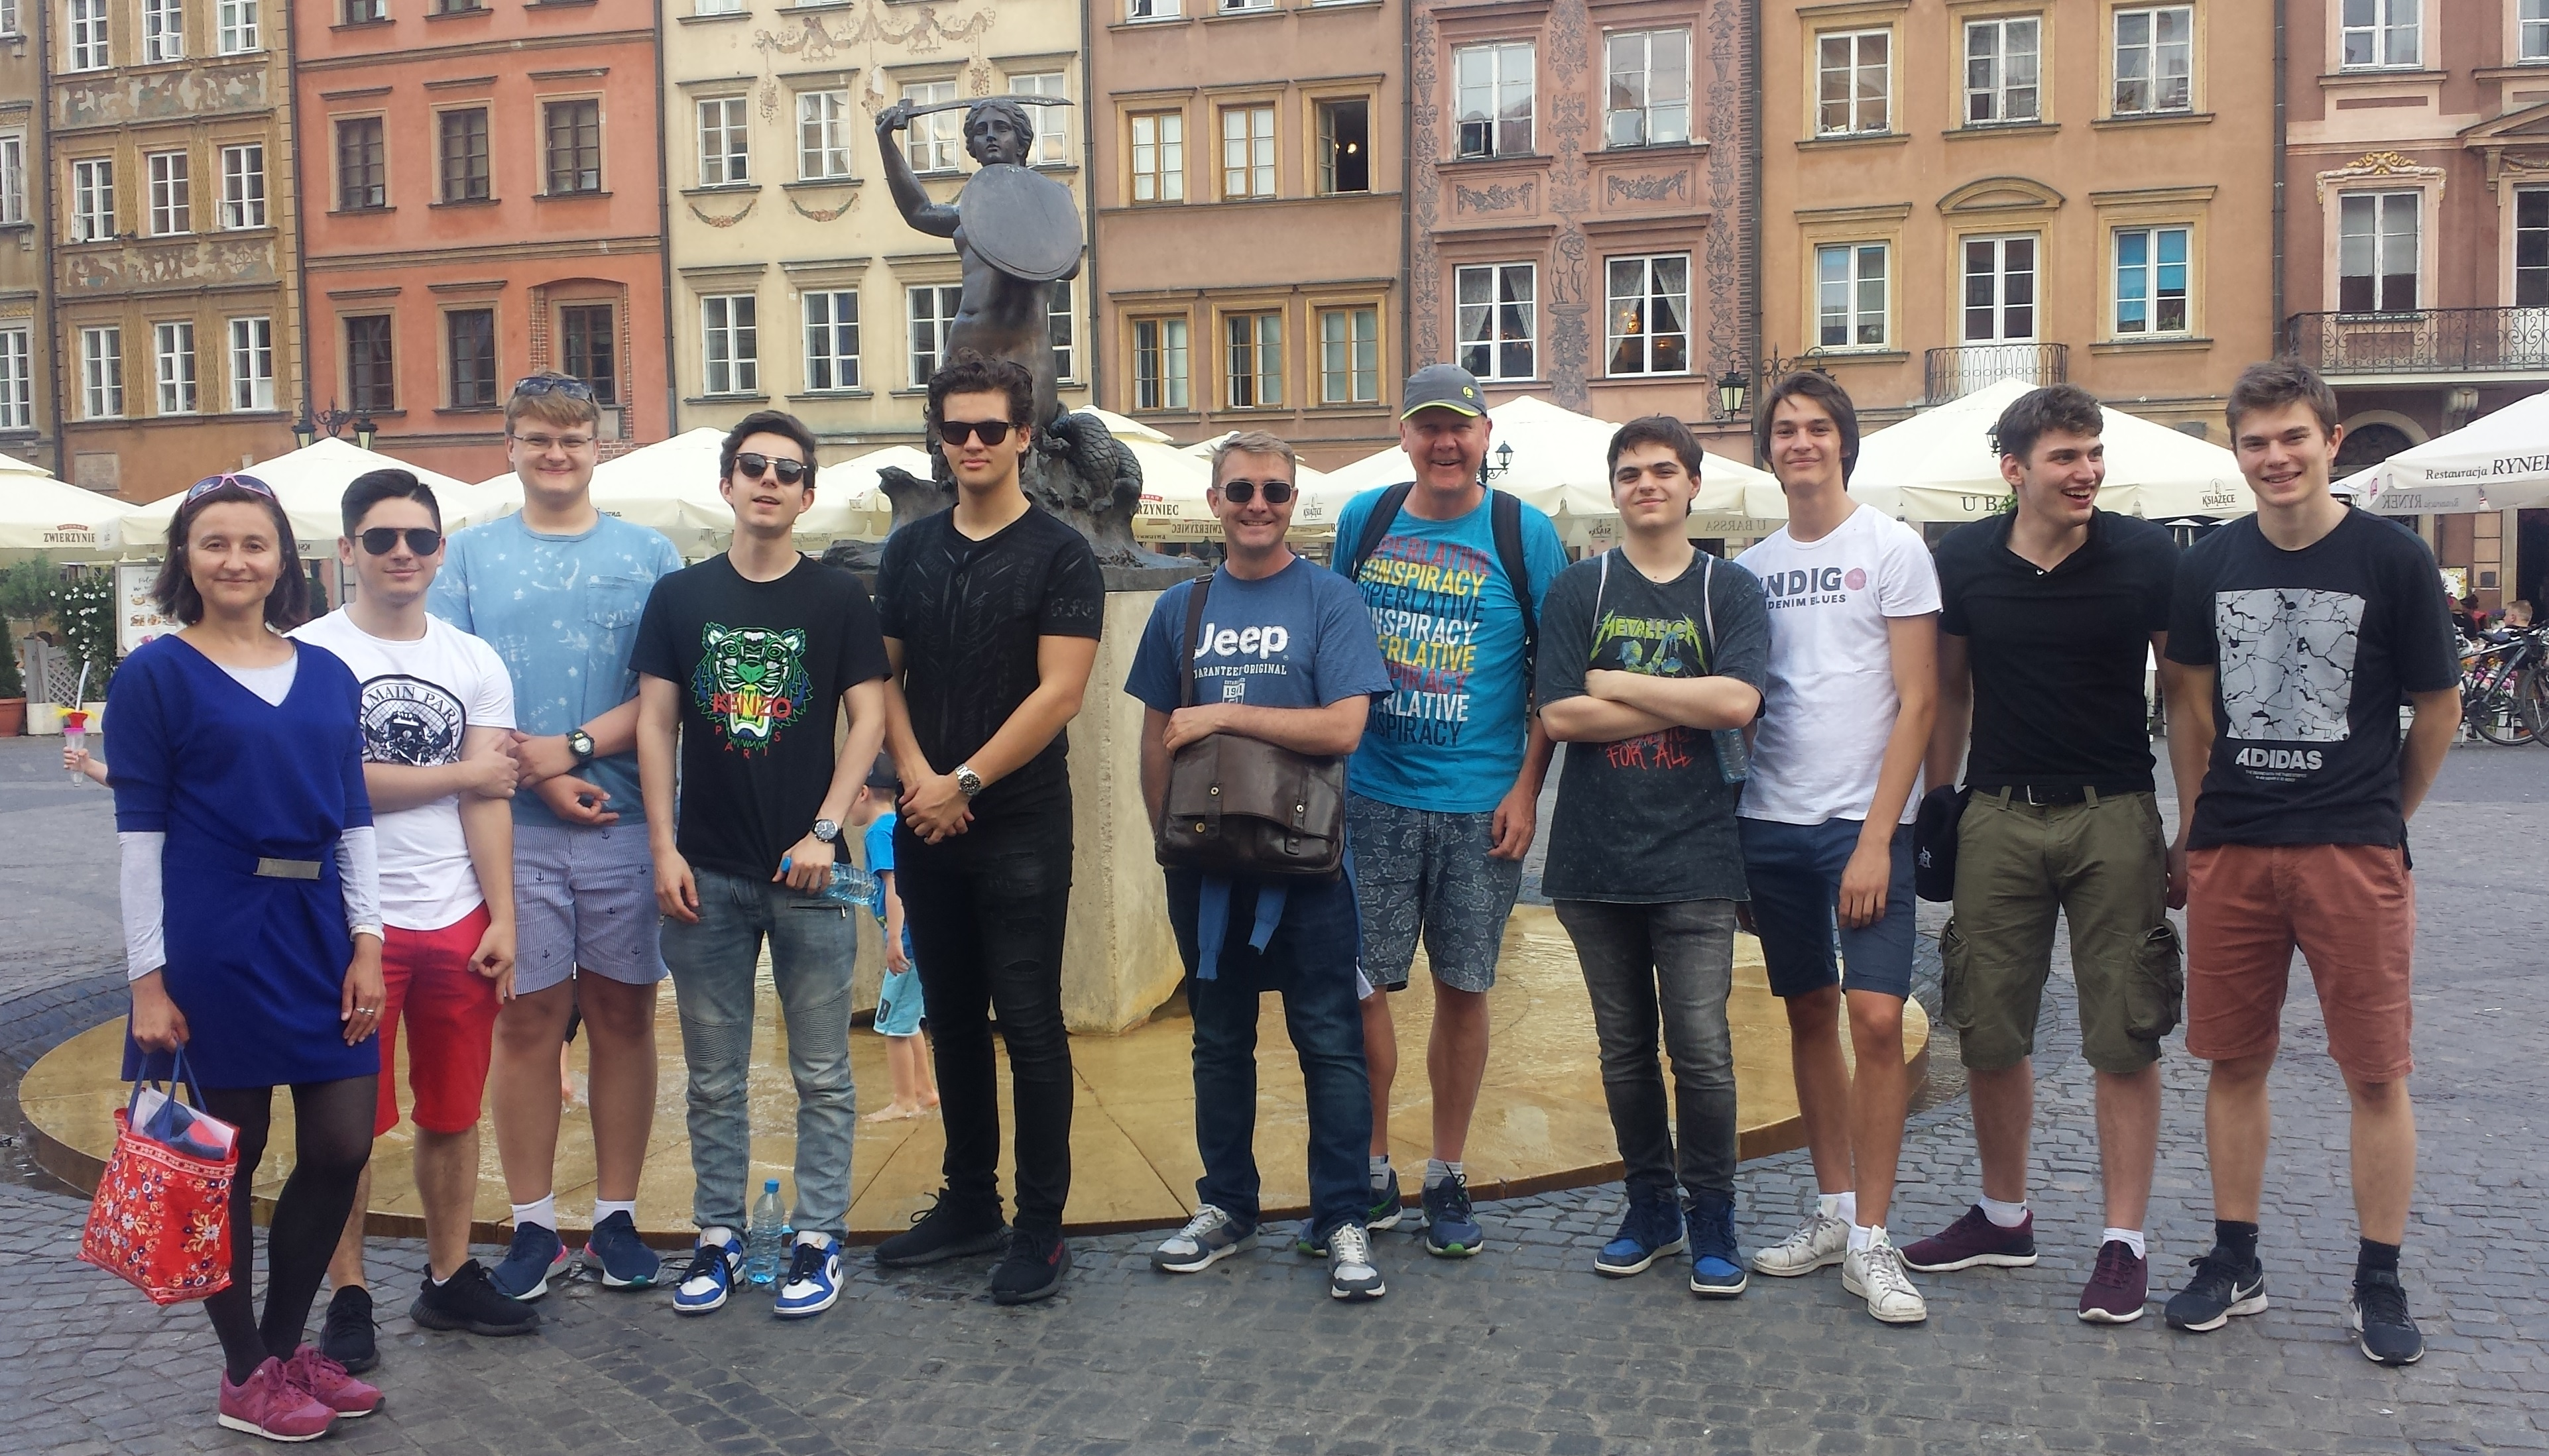 Step in Warsaw - City guide to Warsaw. The young international volunteers with the mermaid in the background. They came to Poland to work one week within the NGO organisation Habitat for Humanity. A guided sightseeing of Warsaw before leaving to the building site. Warsaw, 02.06.2019.